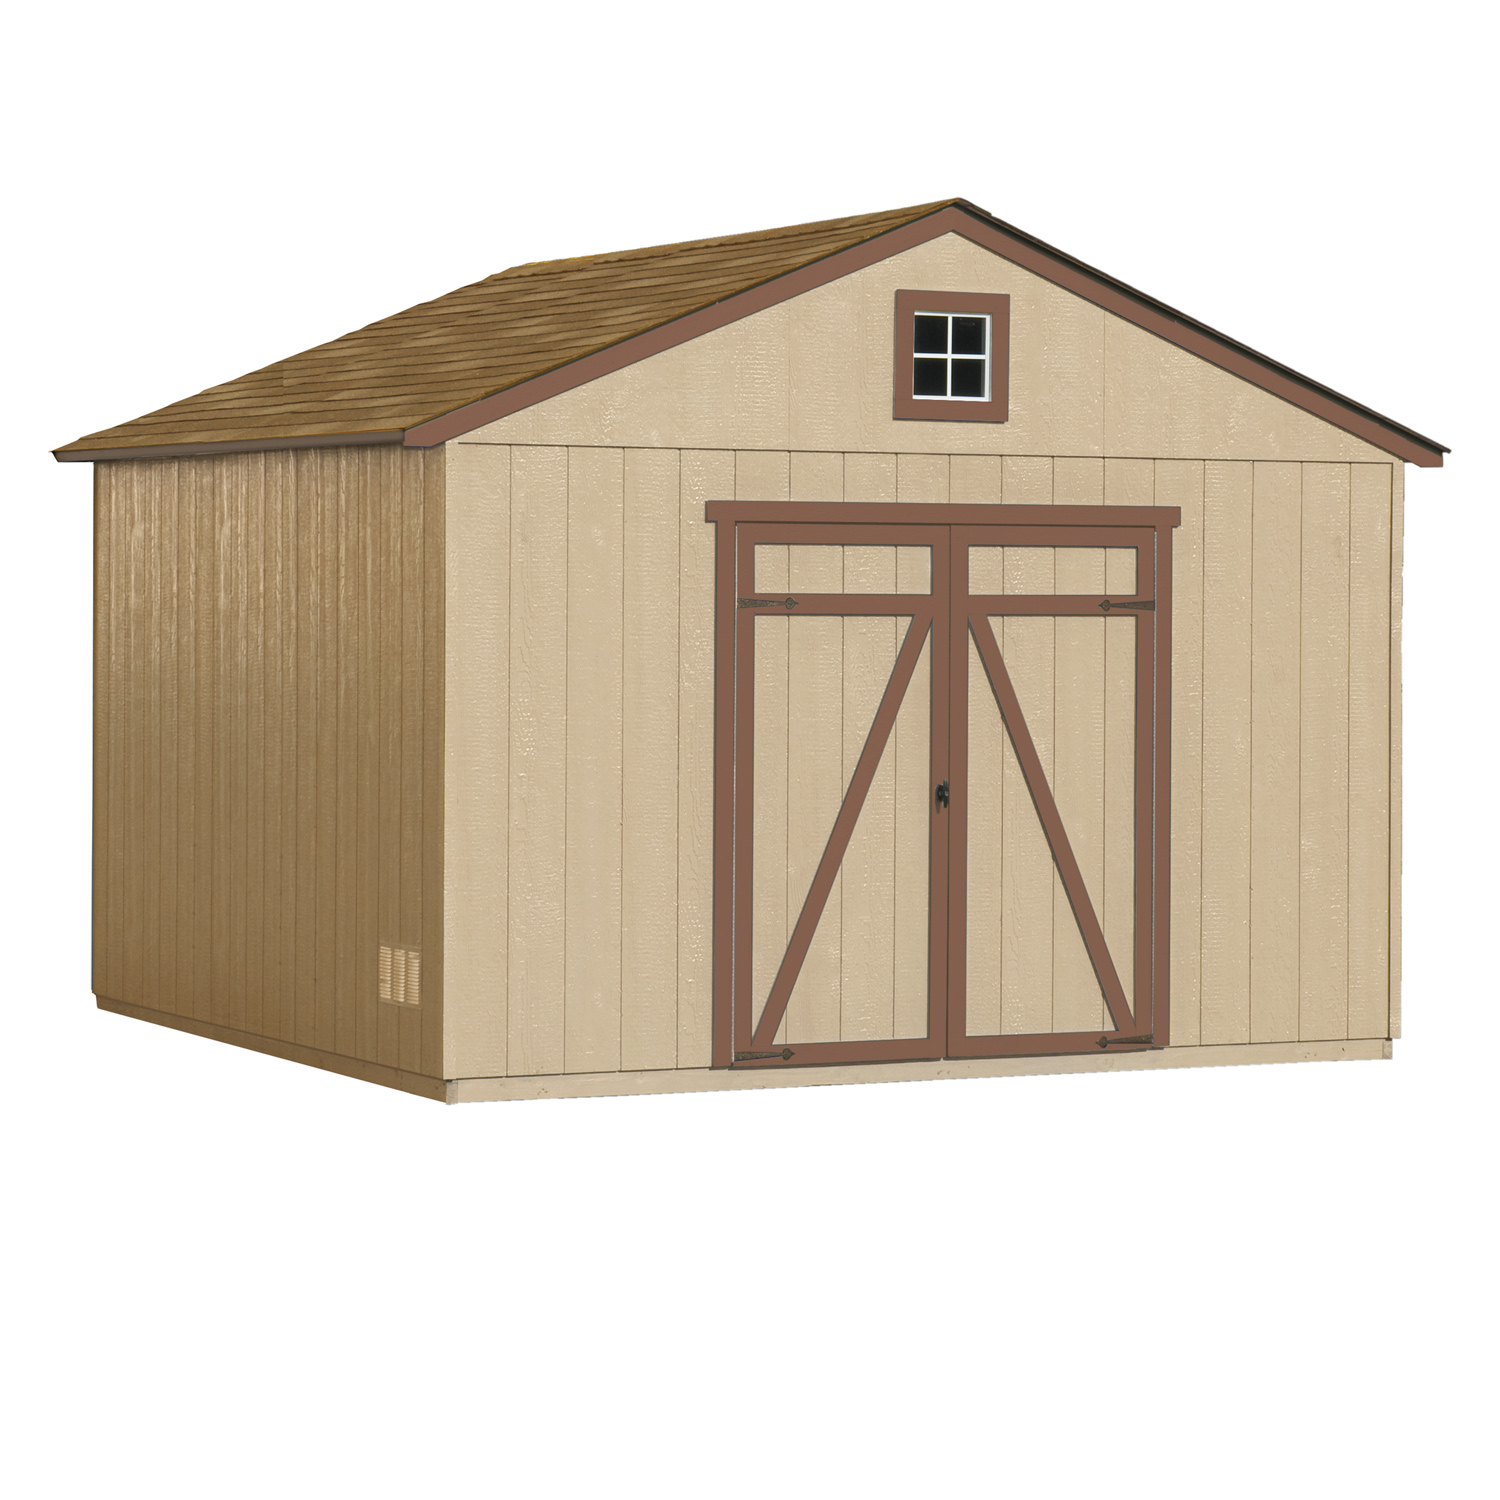 prices doors shed selection home find shop storage sheds of lowes the t wood guaranteed and x at heartland our price garden